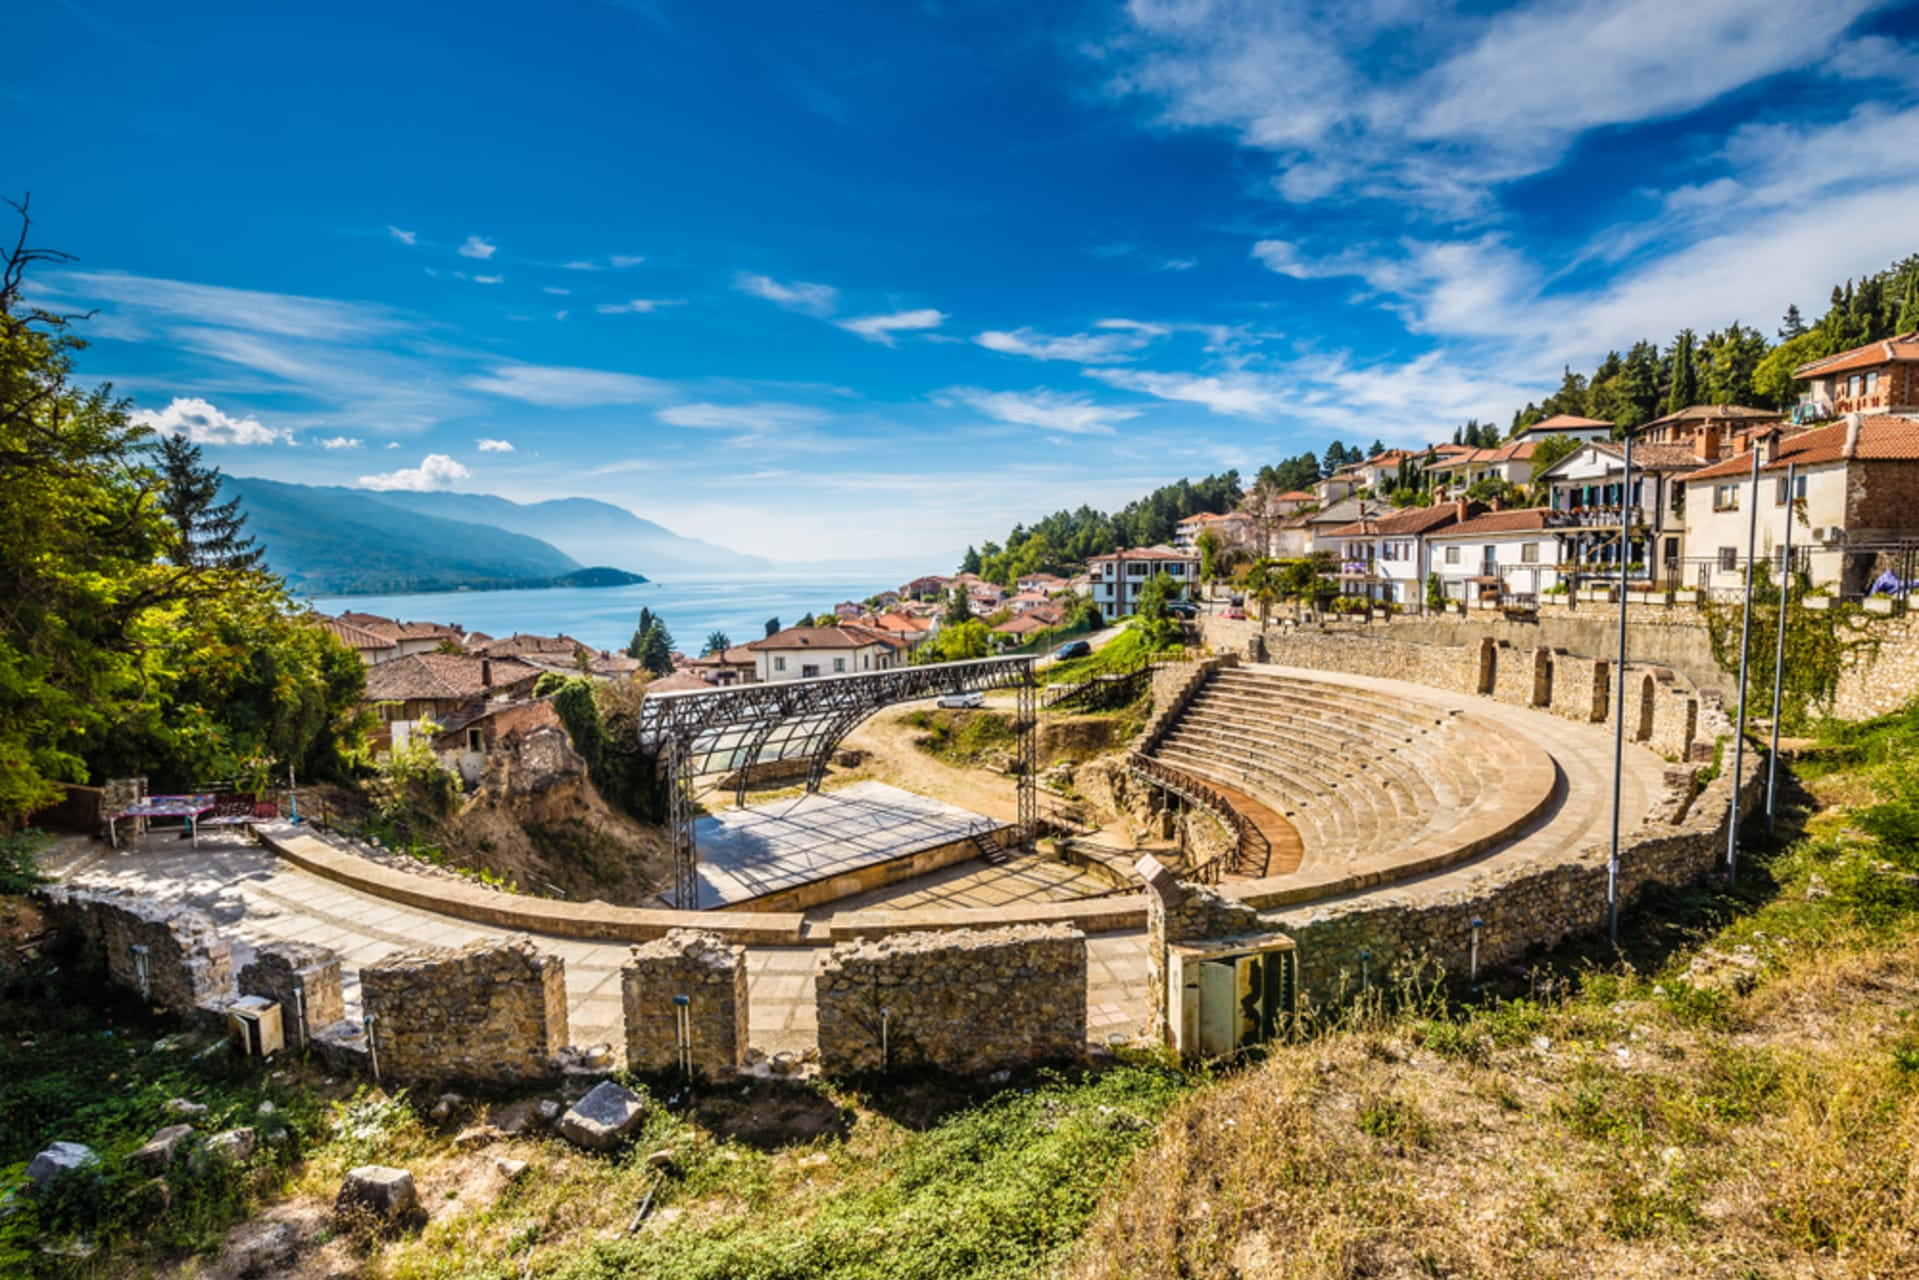 Ohrid - Ohrid, the City of UNESCO: a Place Where History and Nature Combine